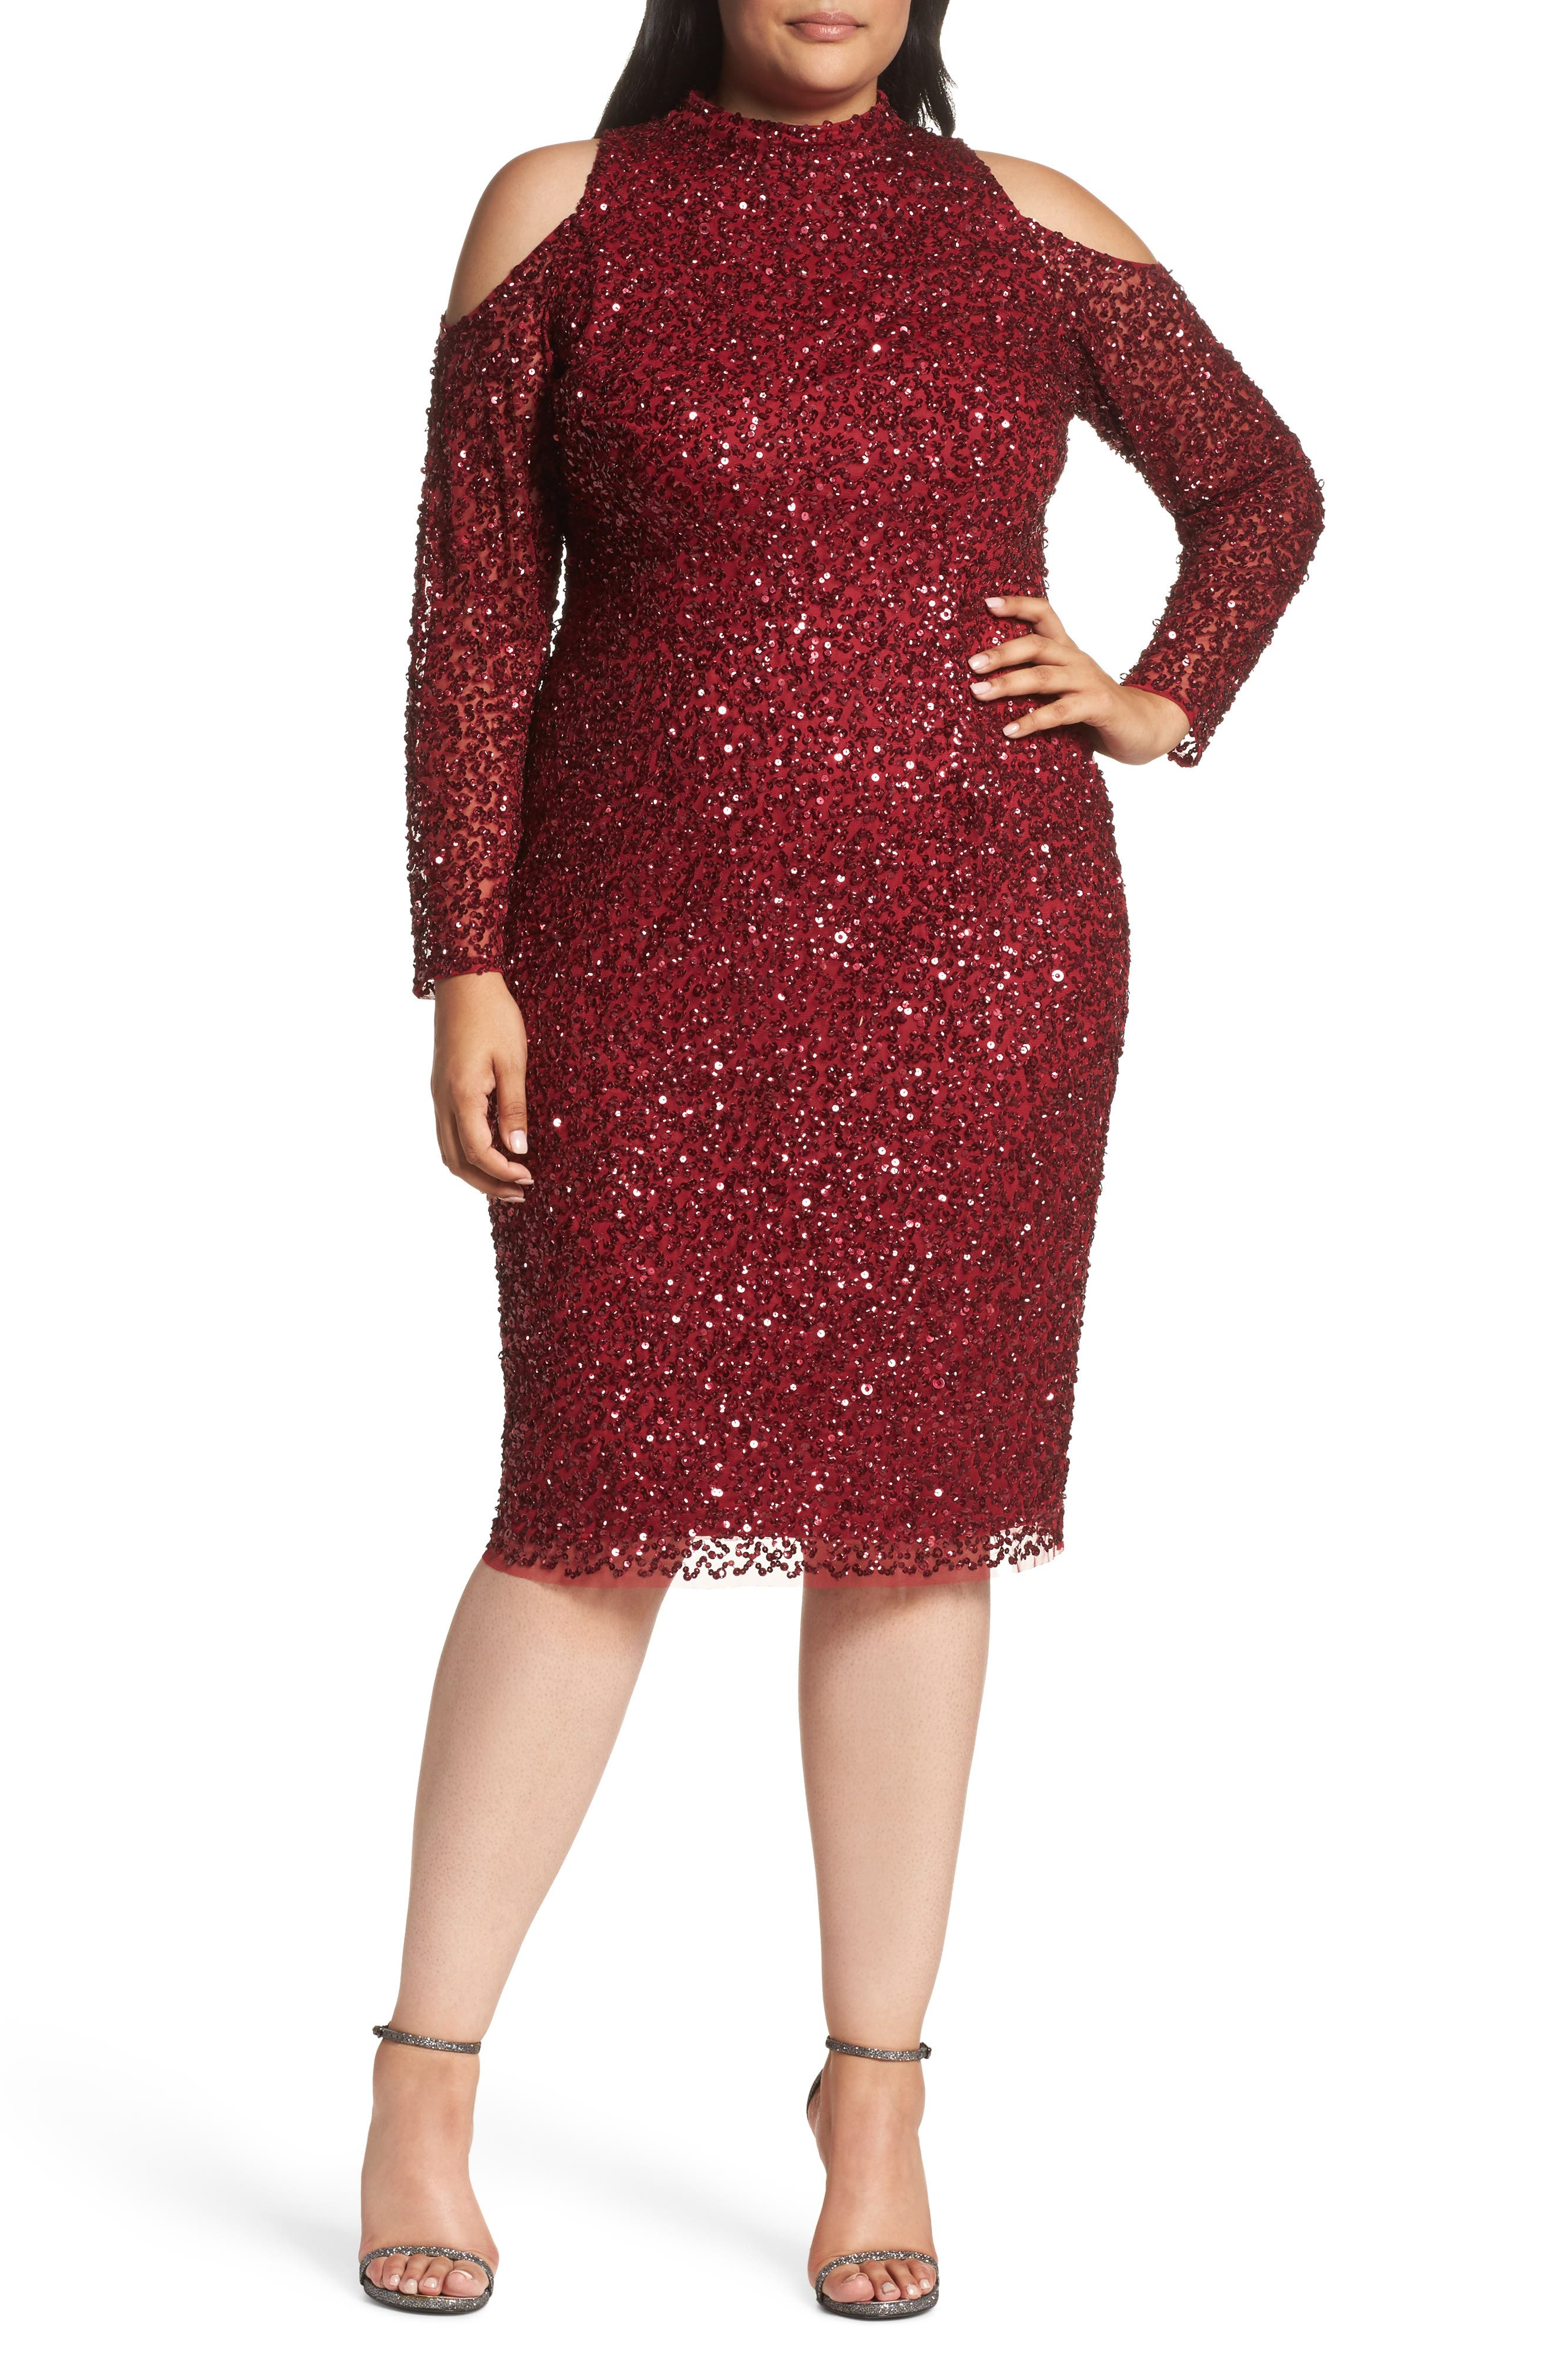 Alternate Image 1 Selected - Adrianna Papell Cold Shoulder Beaded Sheath Dress (Plus Size)